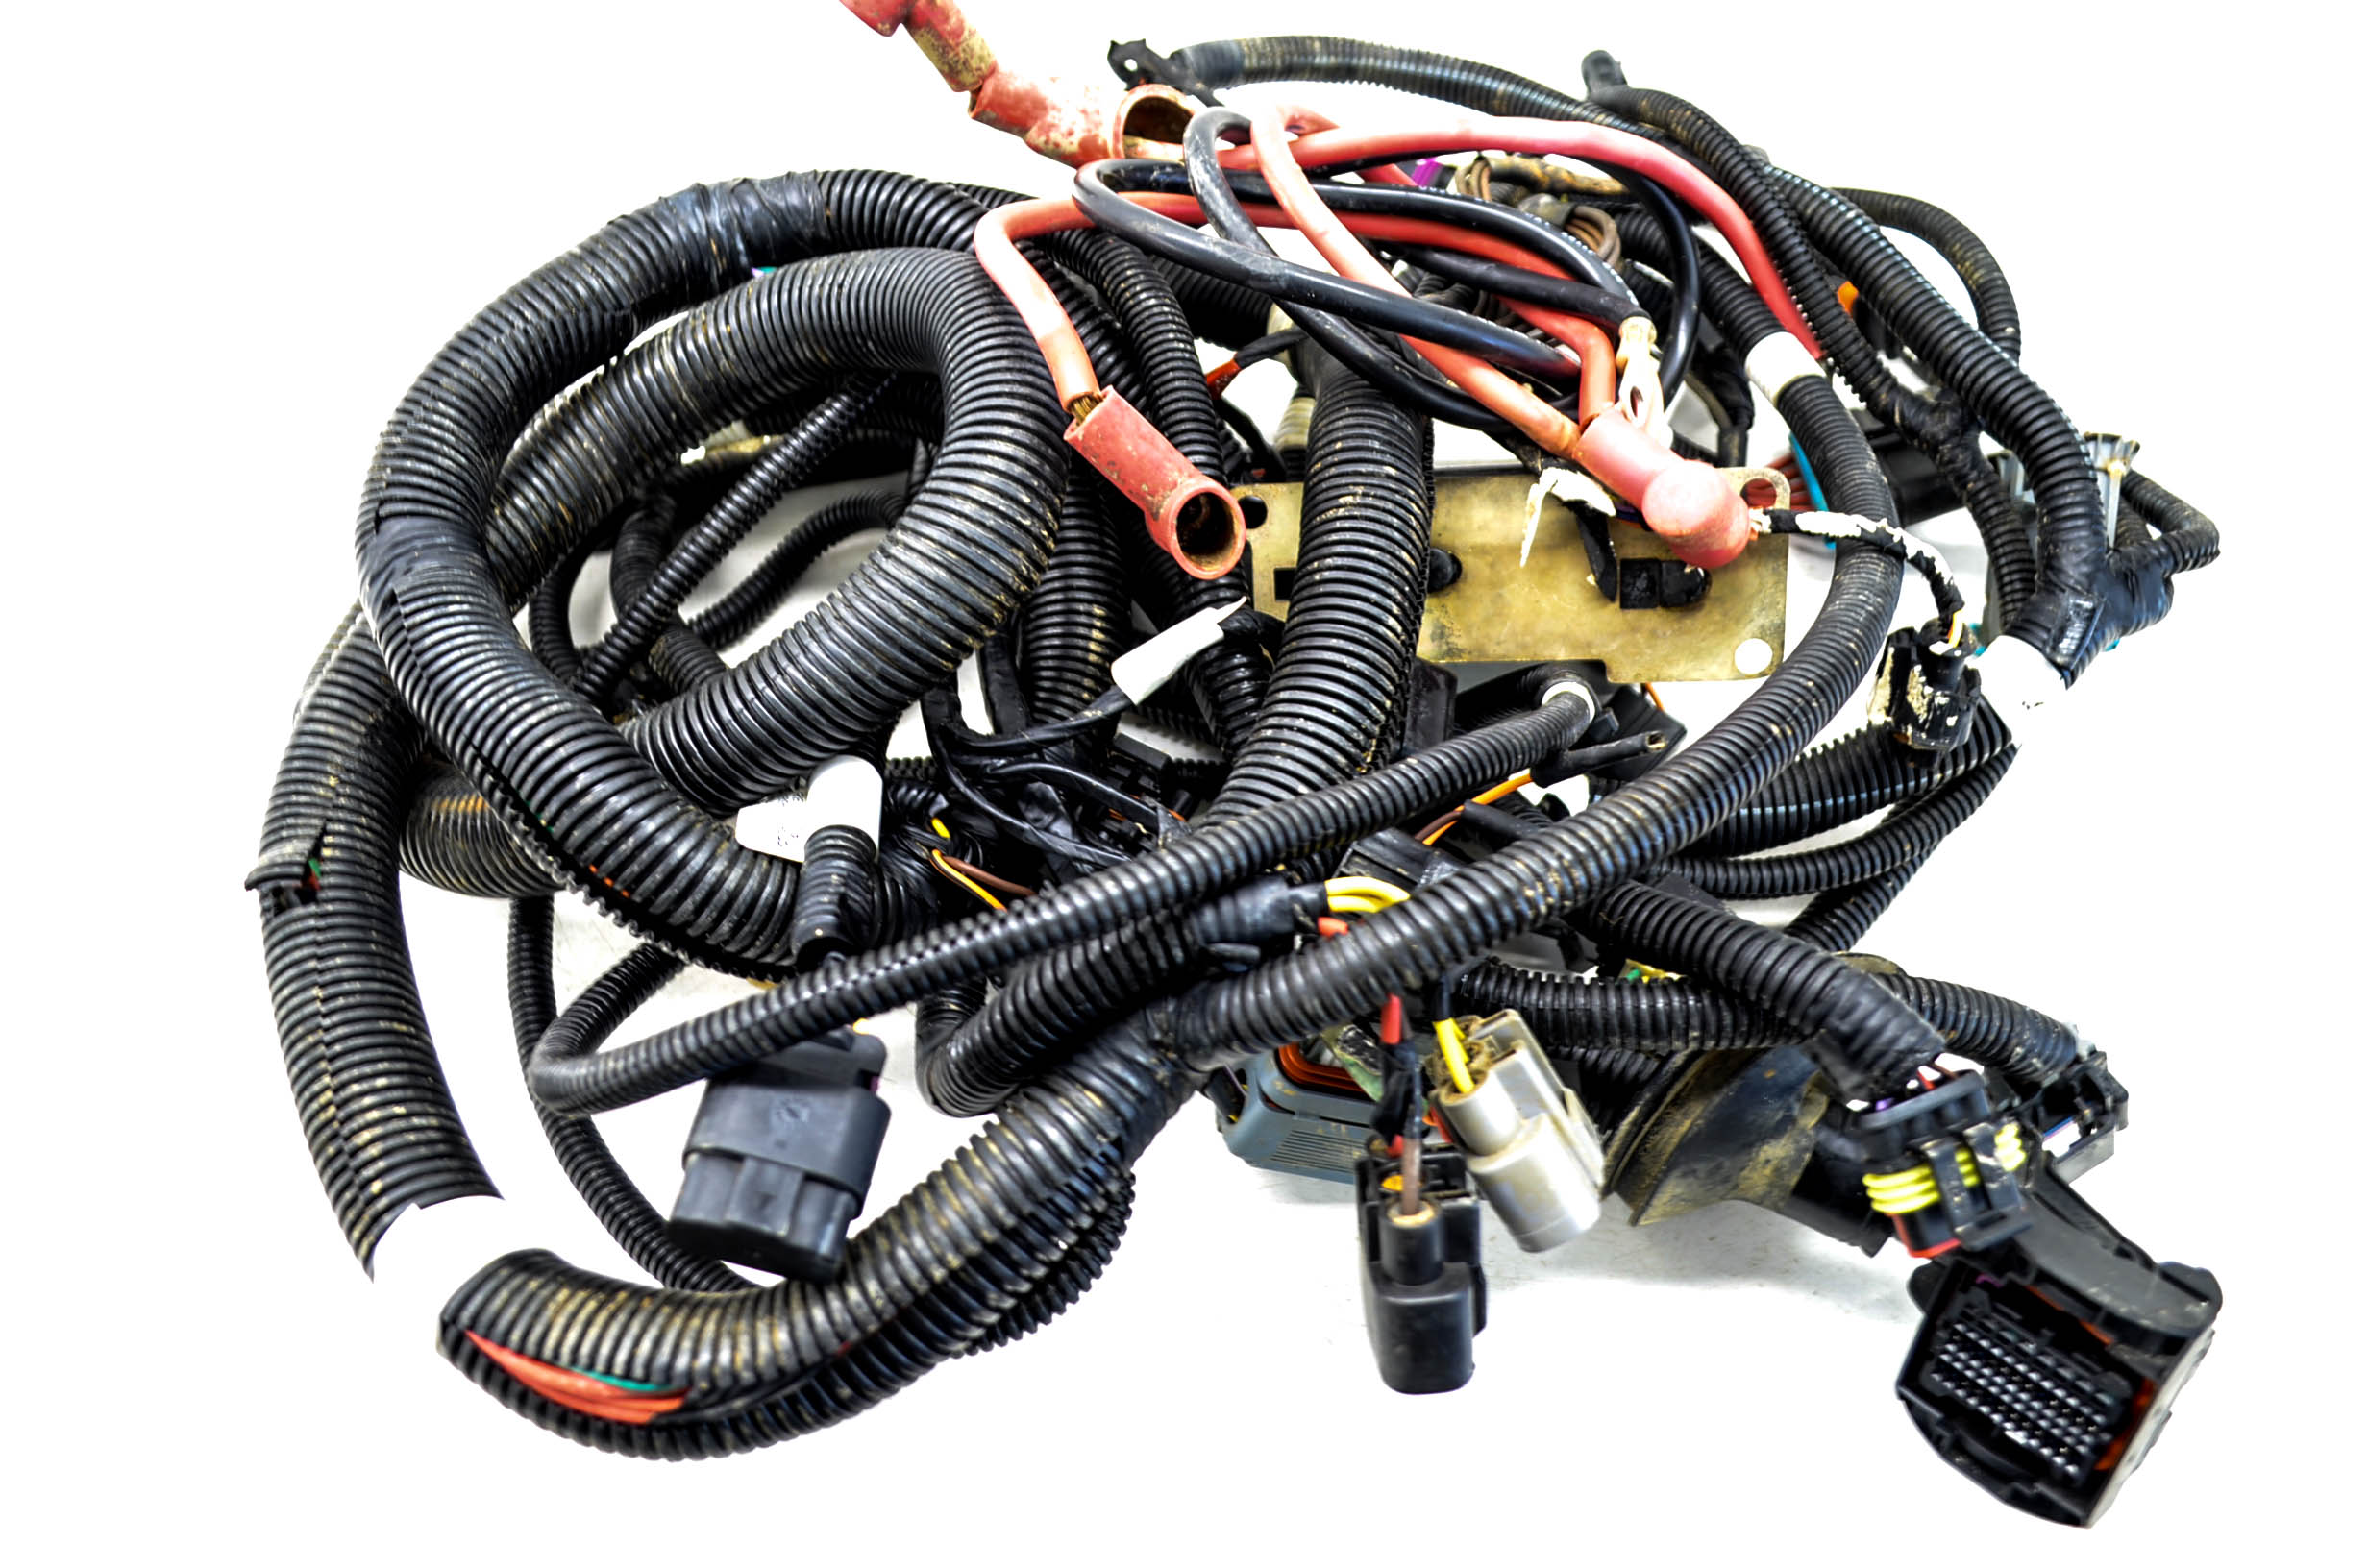 14 Polaris RZR 800 S 4x4 Wire Harness Electrical Wiring | eBay